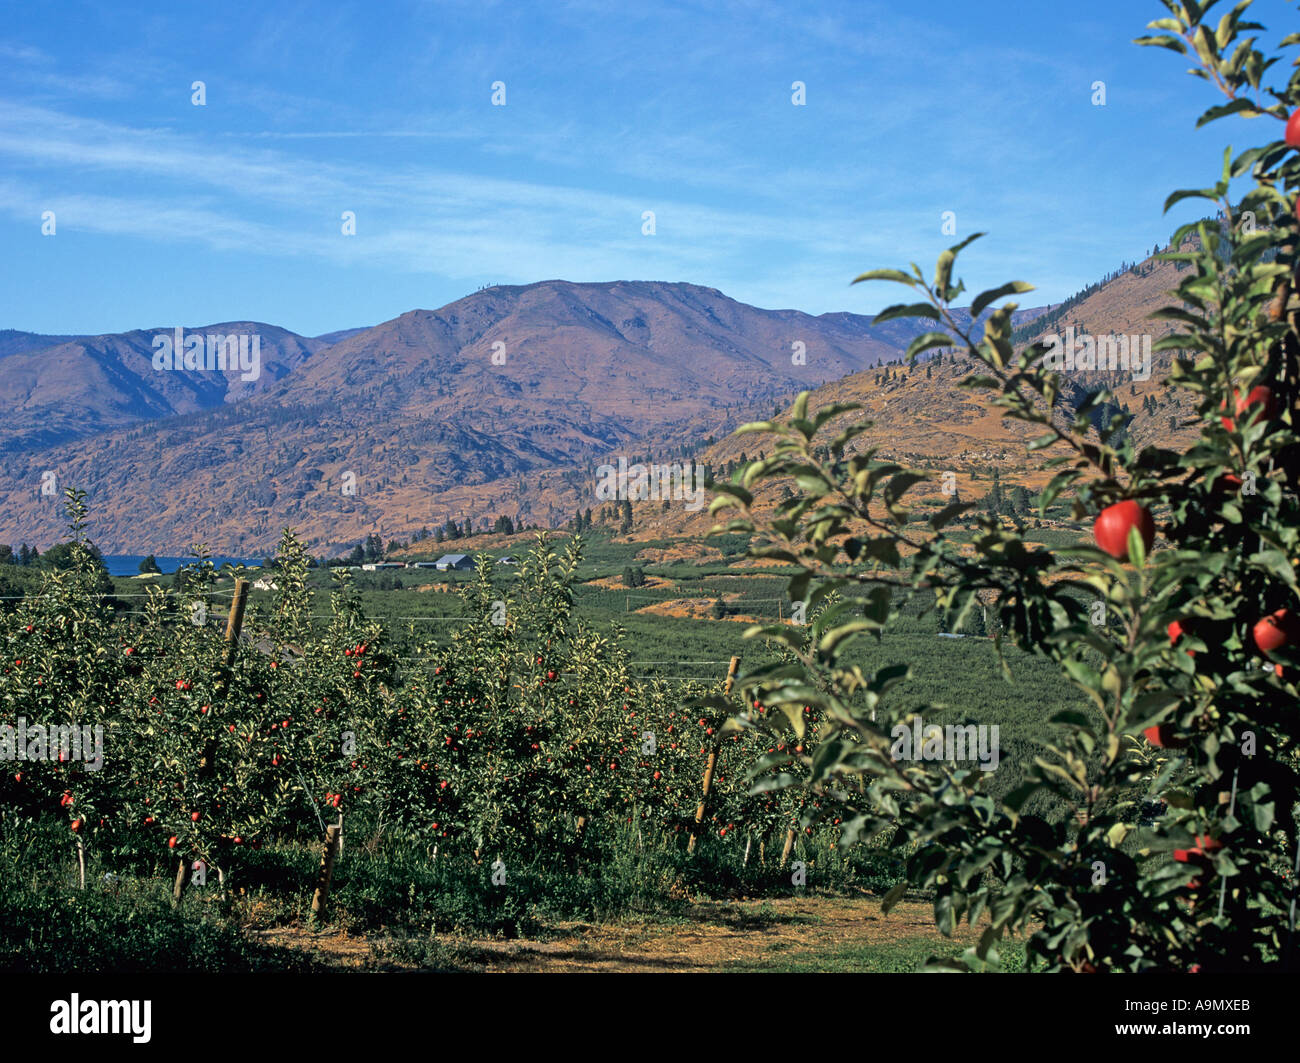 MANSON WASHINGTON STATE USA August At the southern end of Lake Chelan the foothills are covered with apple orchards Stock Photo